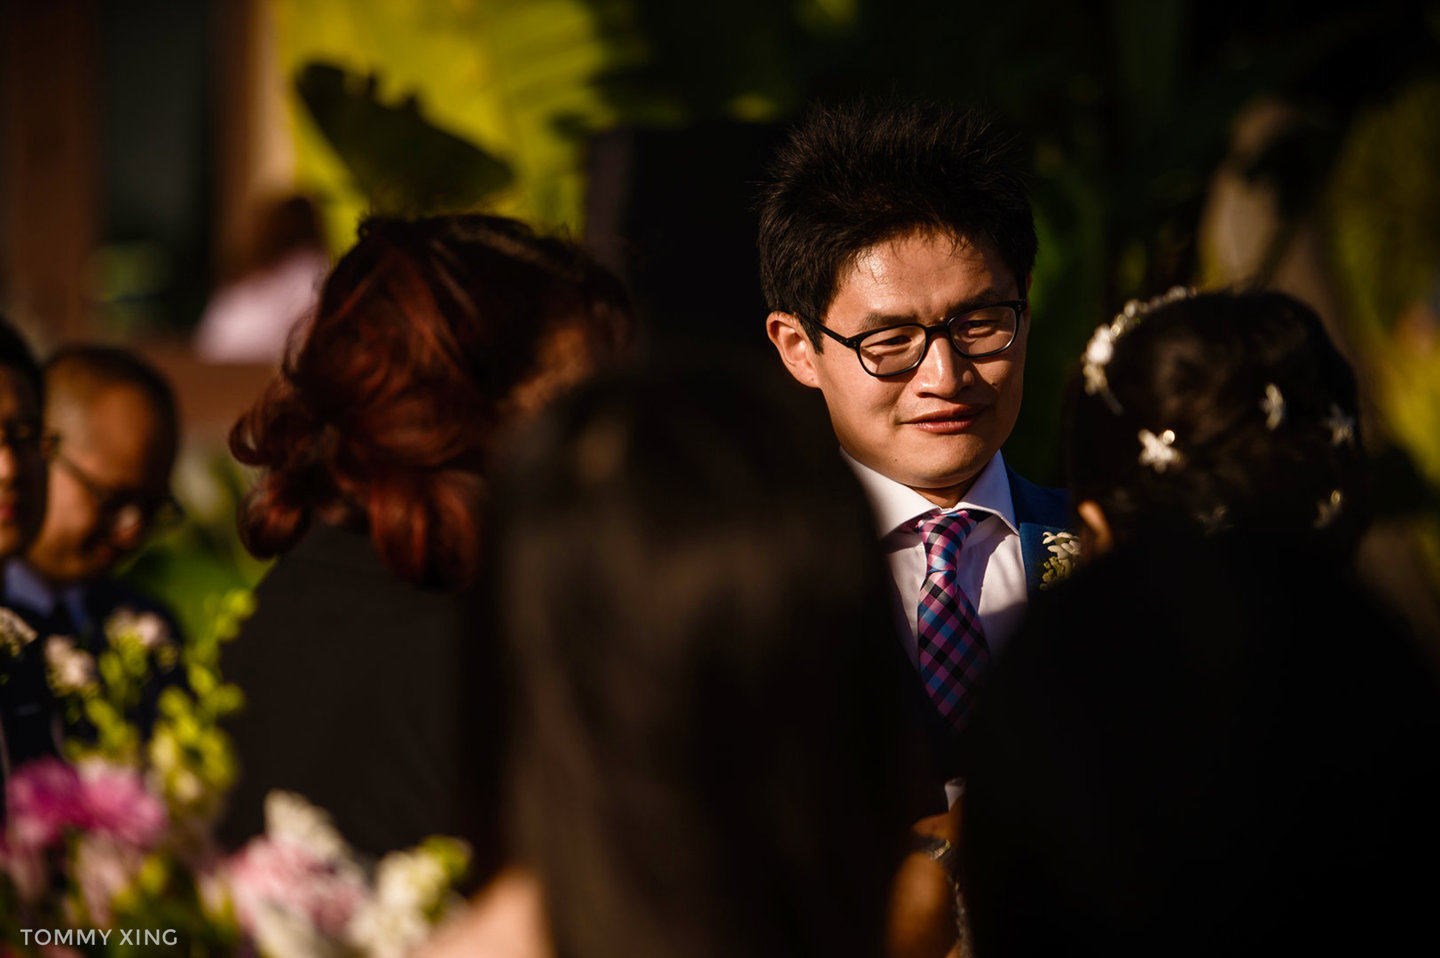 Paradise Point Resort Wedding Xiaolu & Bin San Diego 圣地亚哥婚礼摄影跟拍 Tommy Xing Photography 洛杉矶婚礼婚纱照摄影师 145.jpg